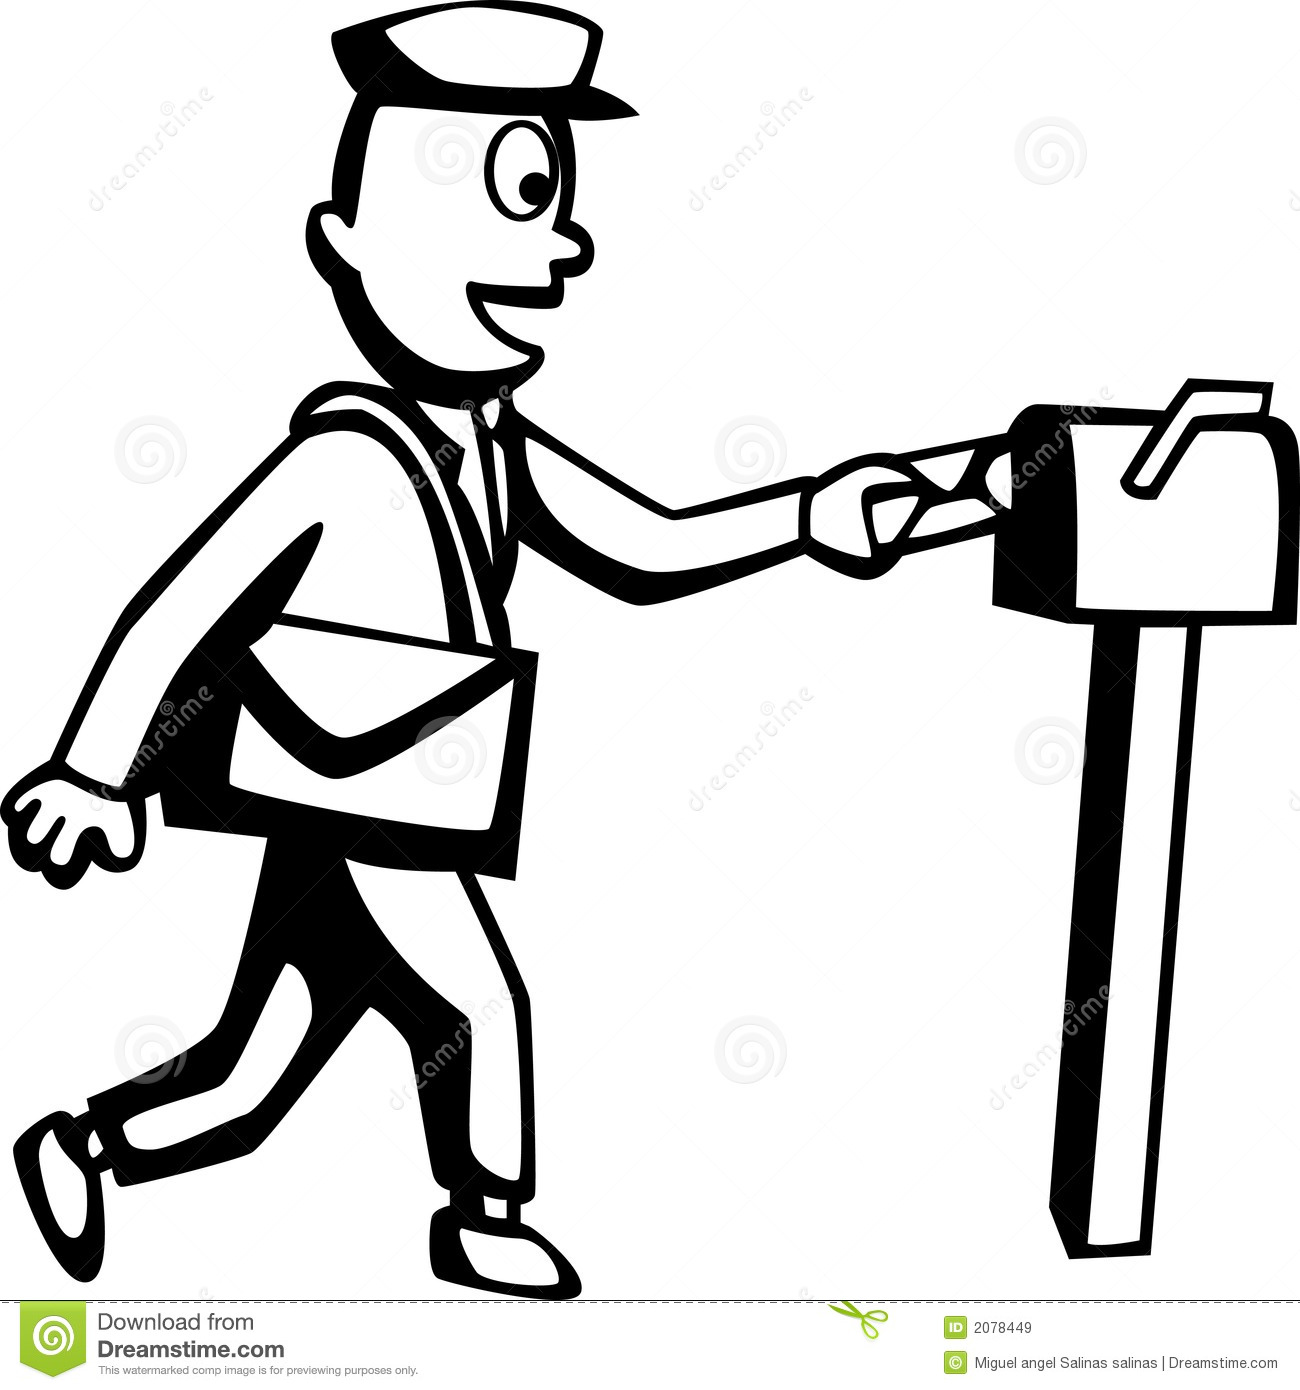 Mailman Royalty Free Stock Images - Image: 2078449